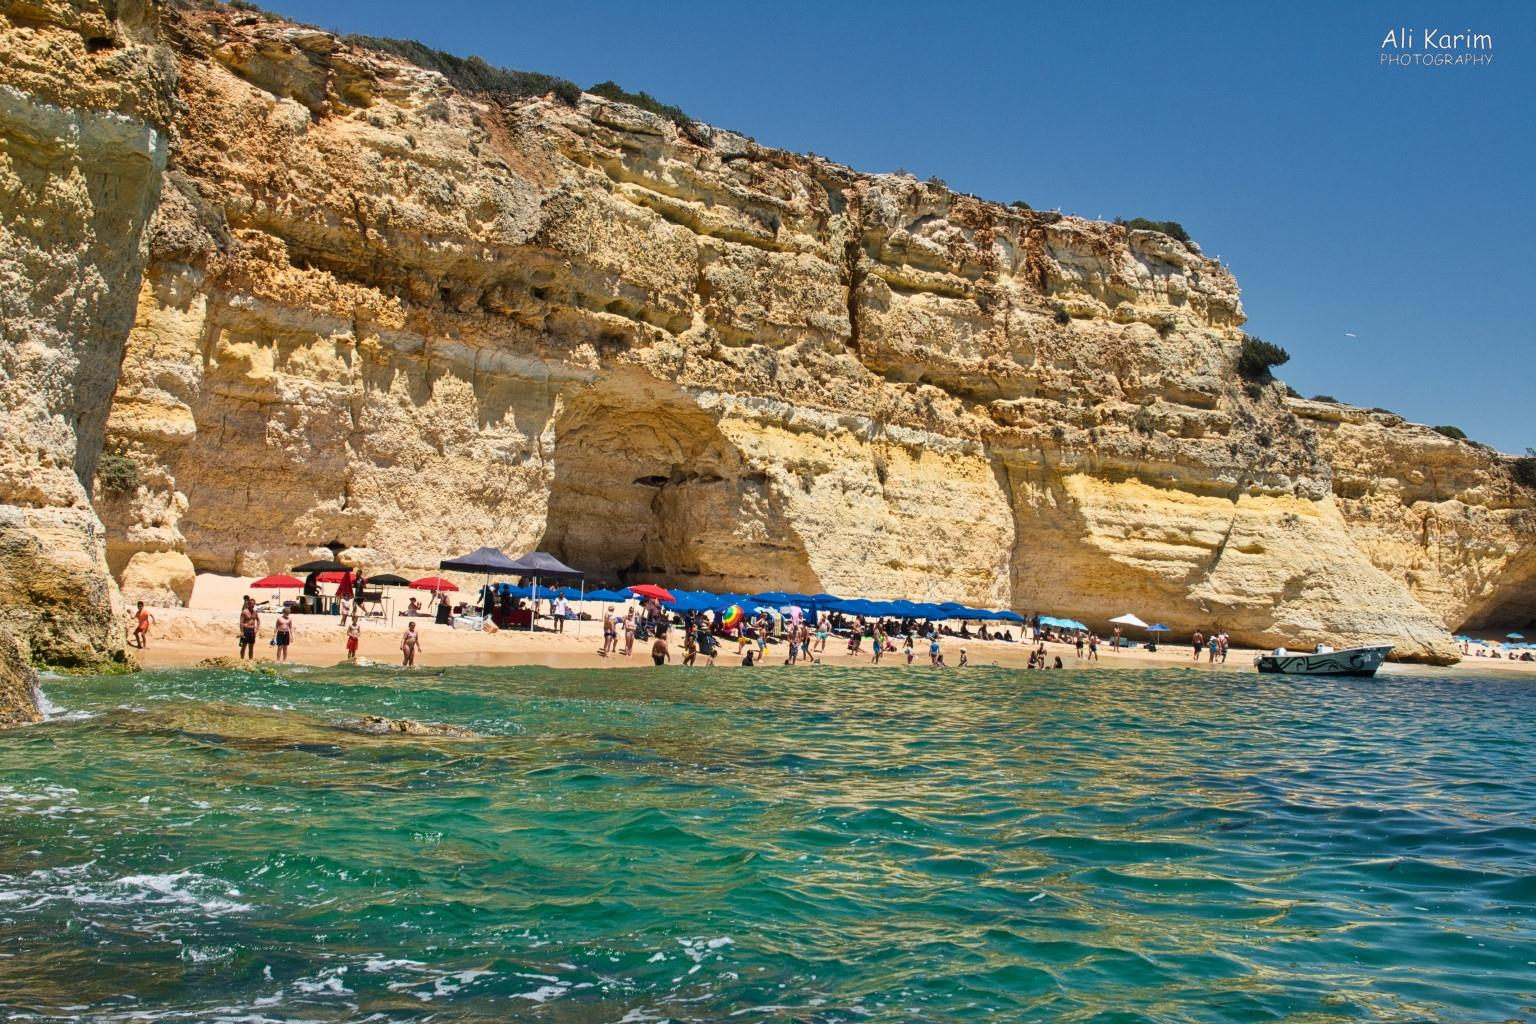 Algarve, Portugal Remote beaches and coastal cliffs